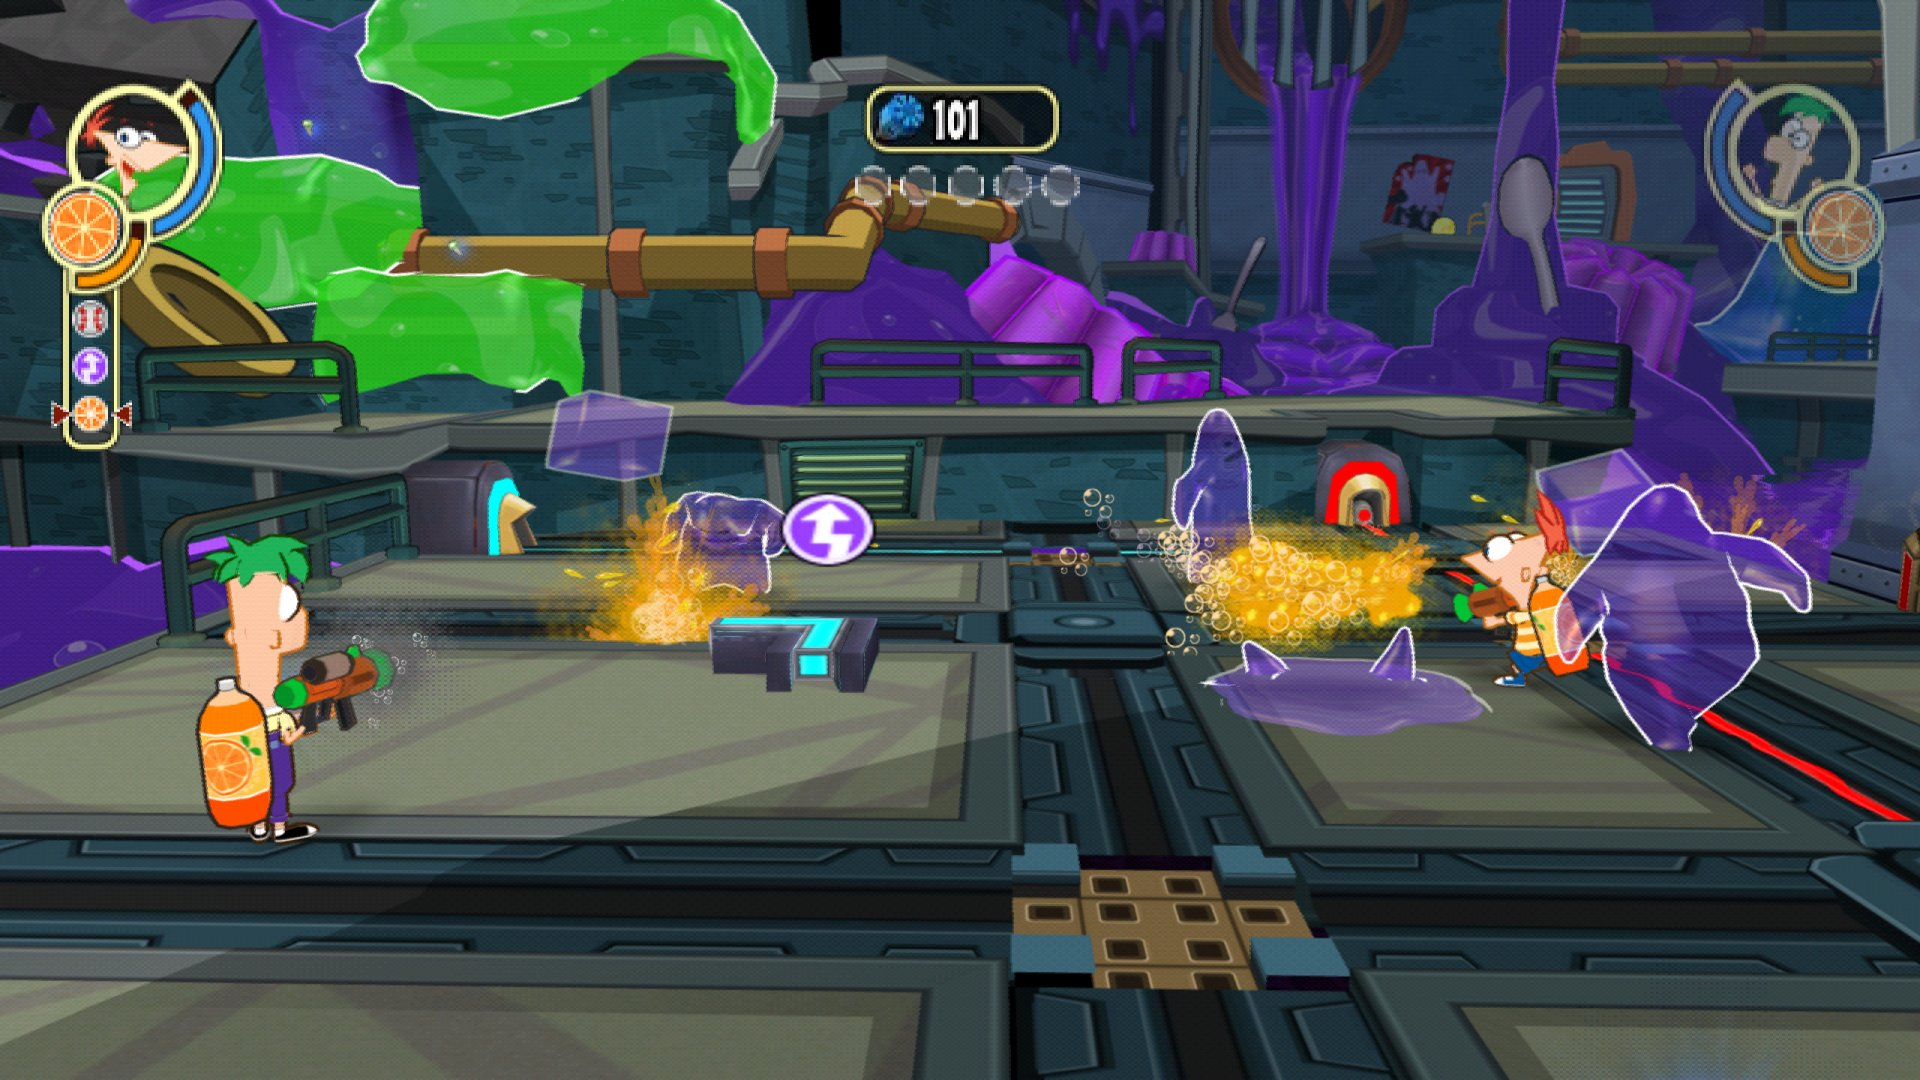 Phineas and Ferb: Across the 2nd Dimension - IGN